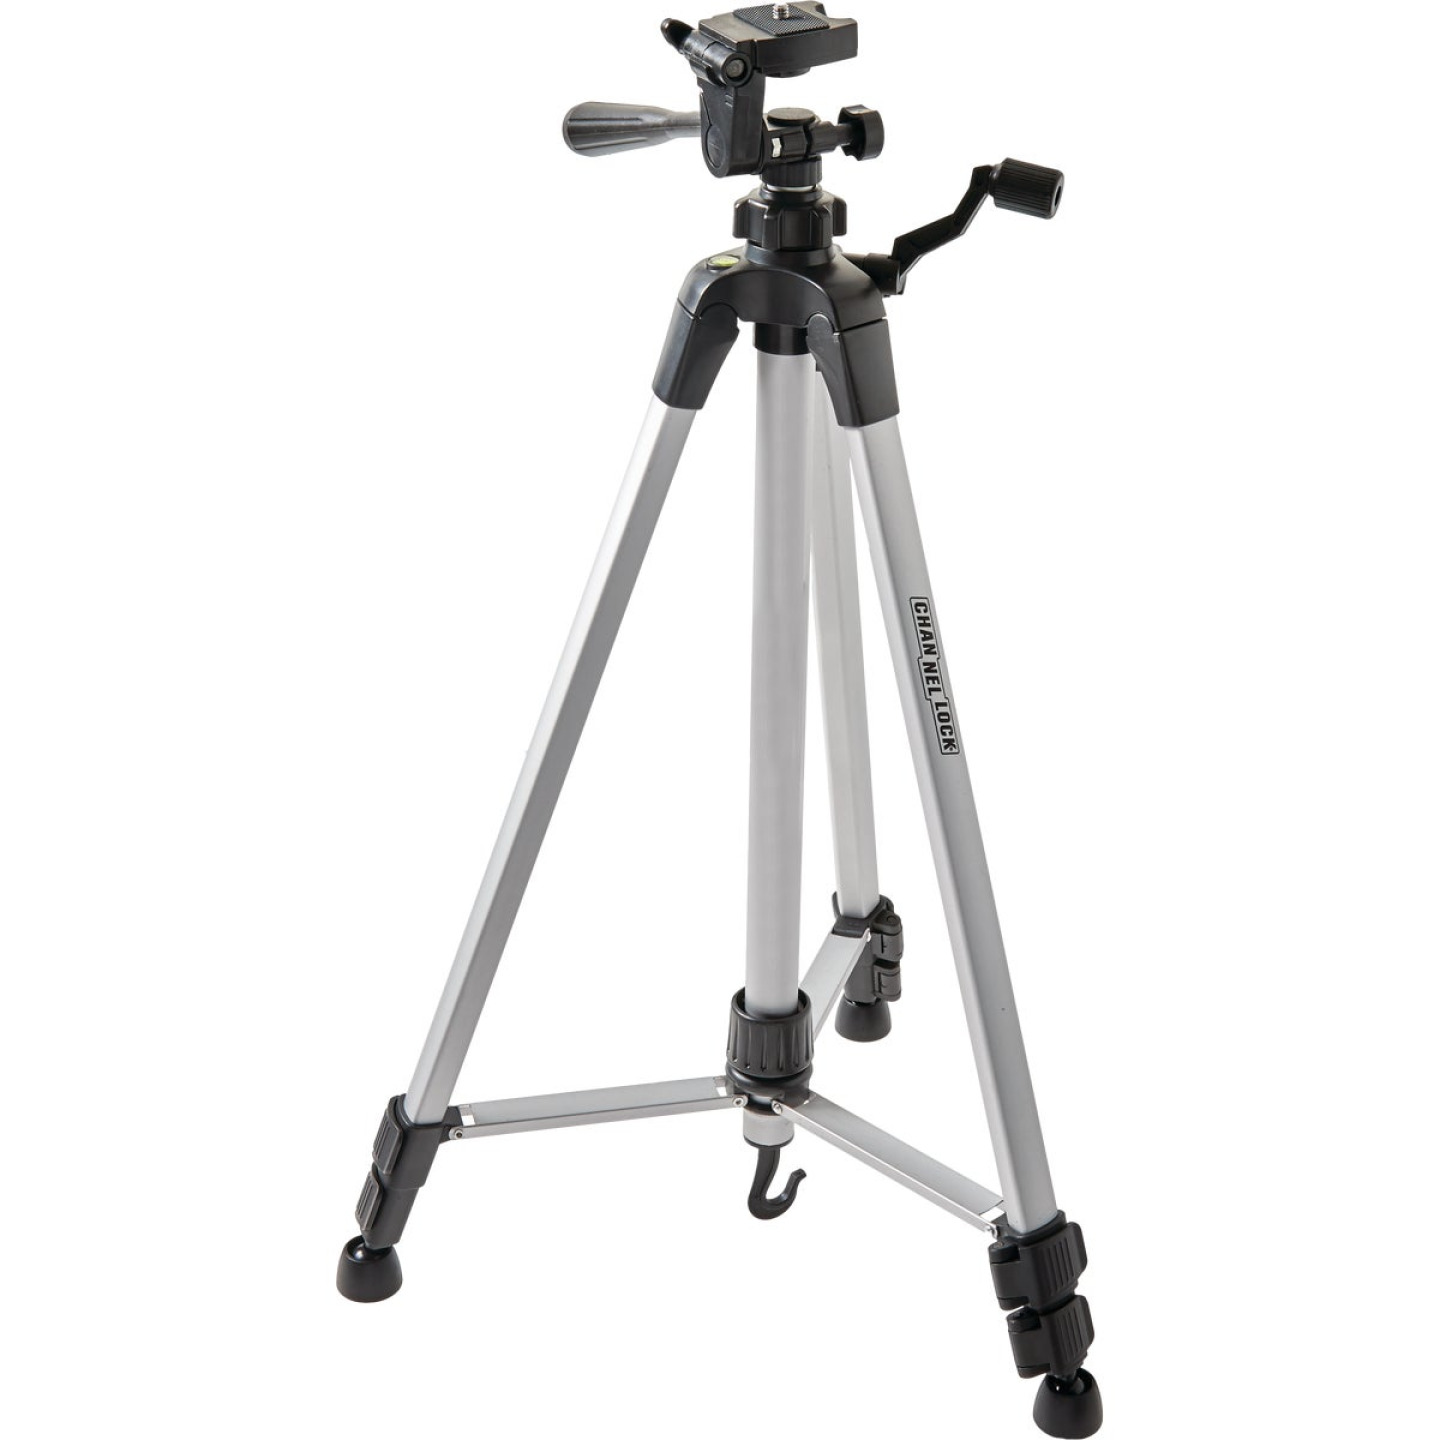 Channellock Laser Level Tripod with Tilting Head Image 1